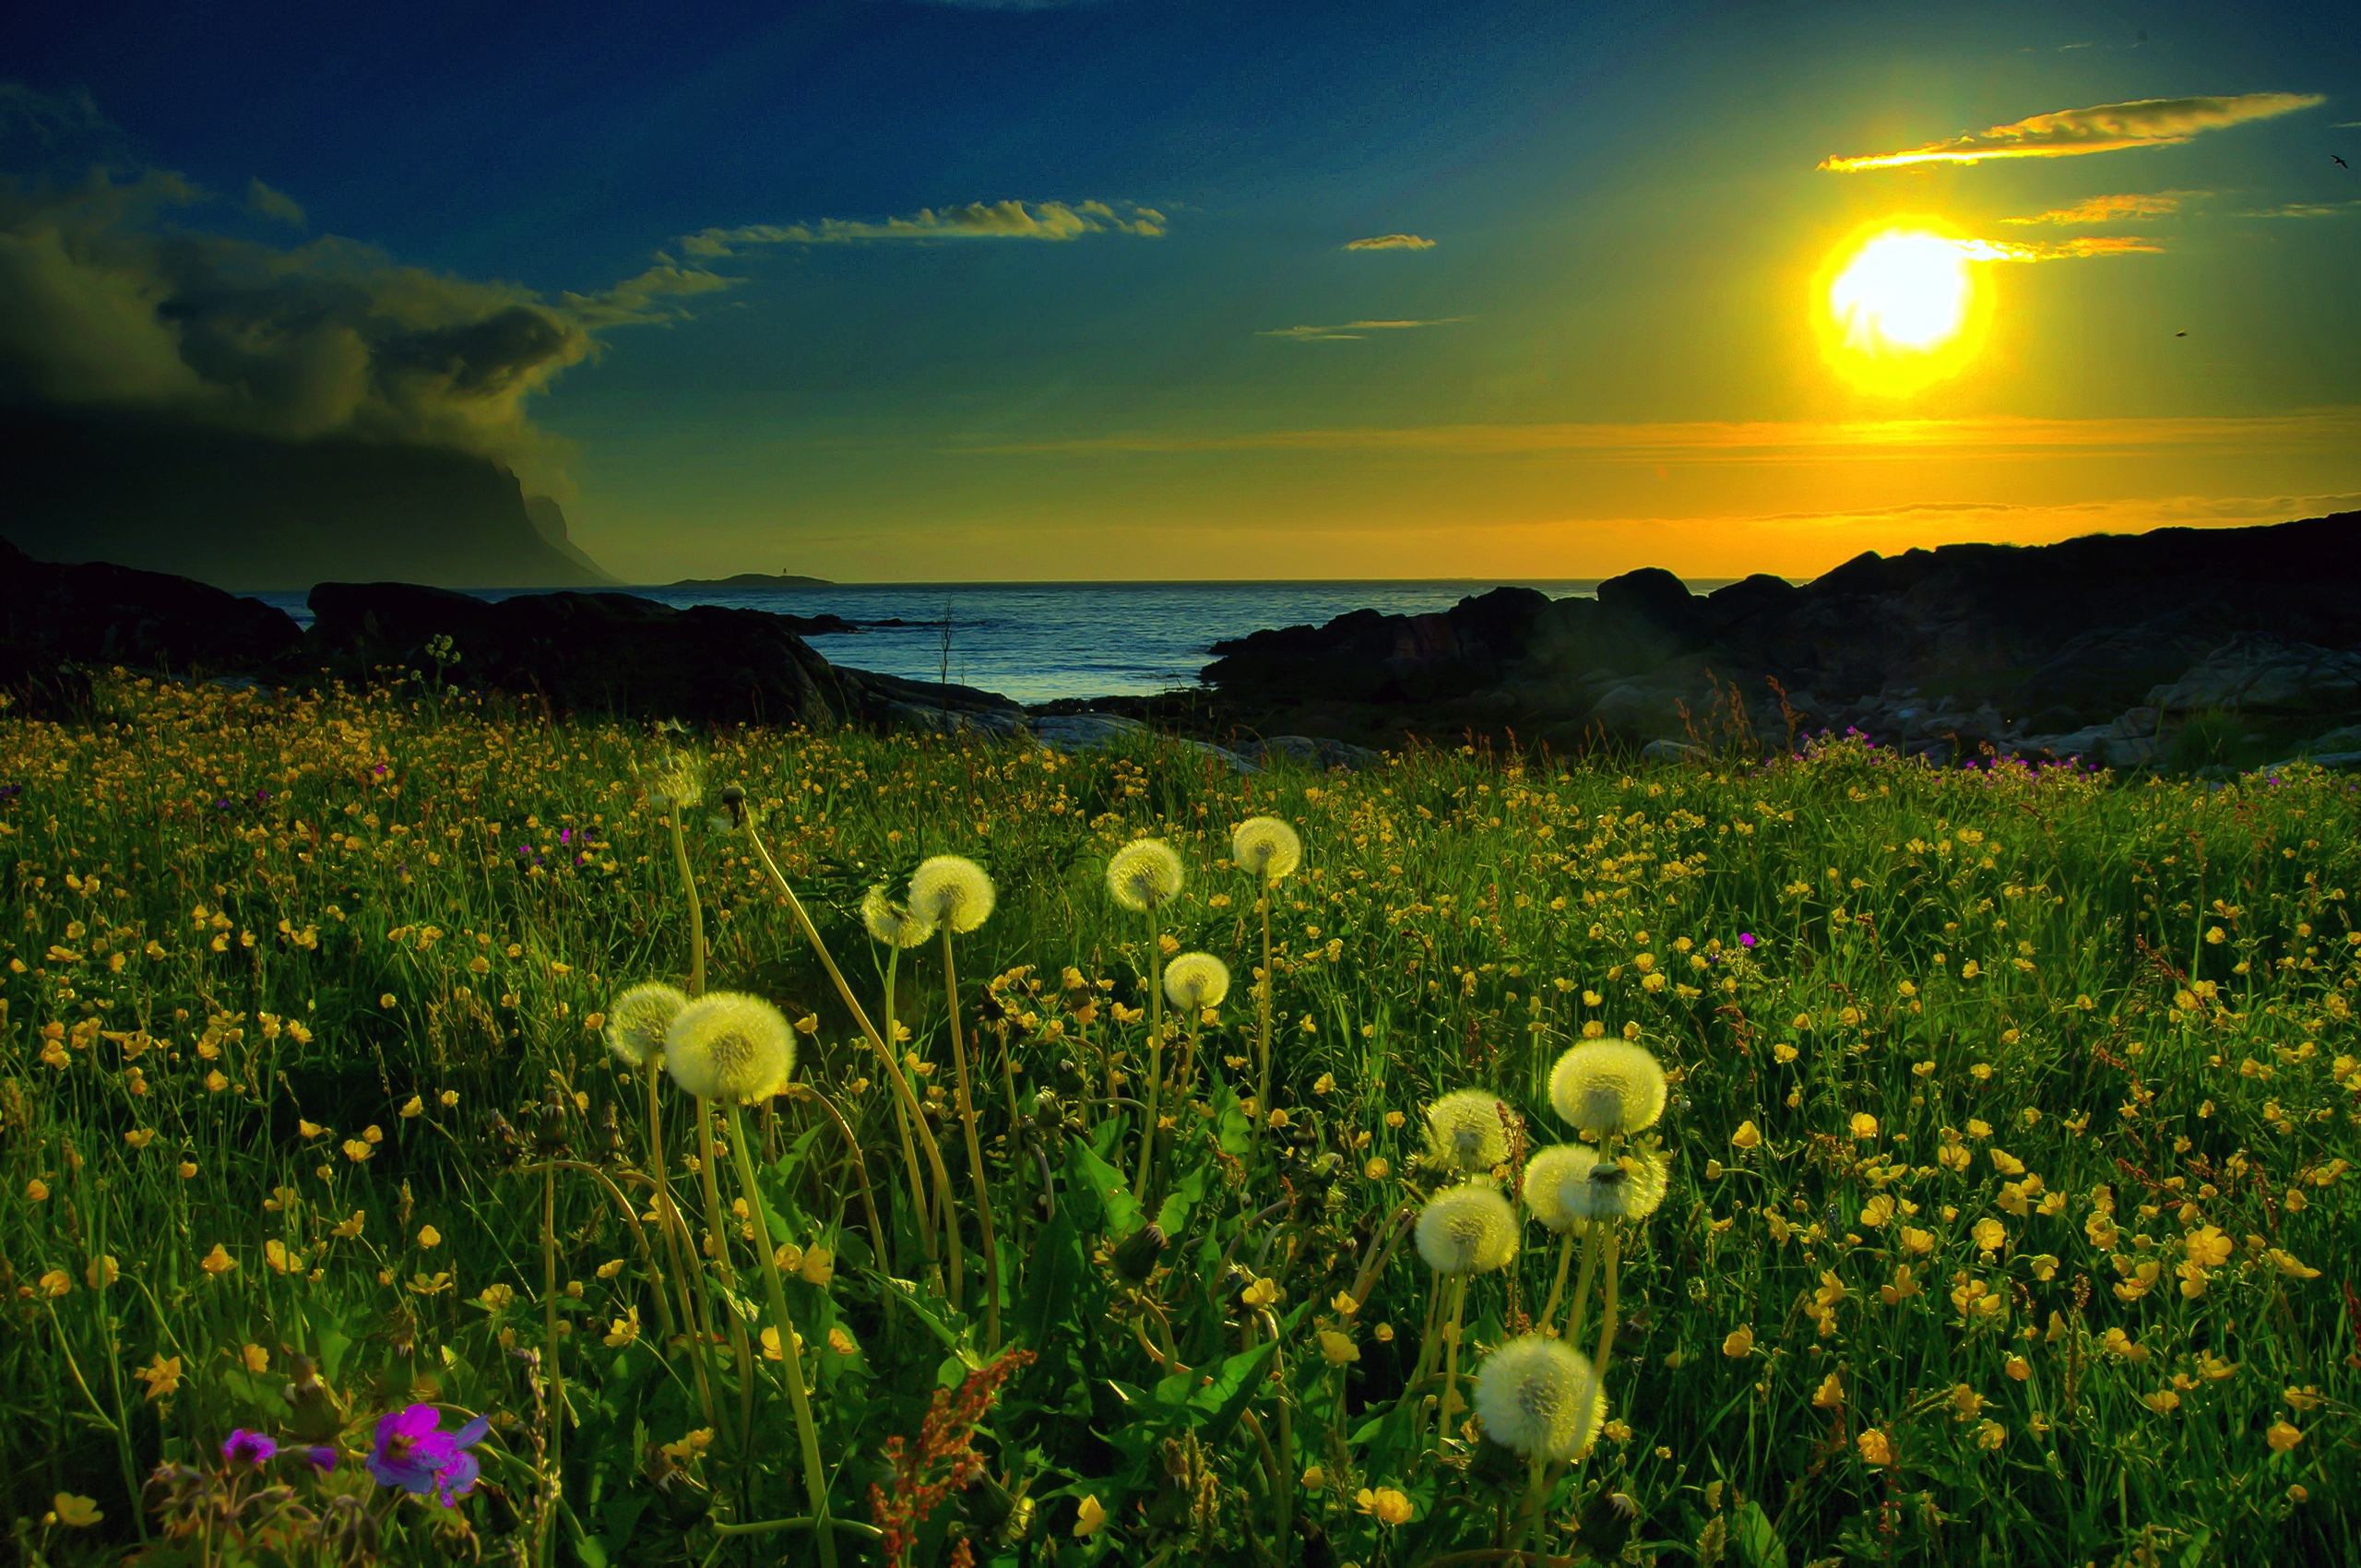 103760 download wallpaper Flowers, Nature, Sunset, Sun, Dandelions, Field screensavers and pictures for free